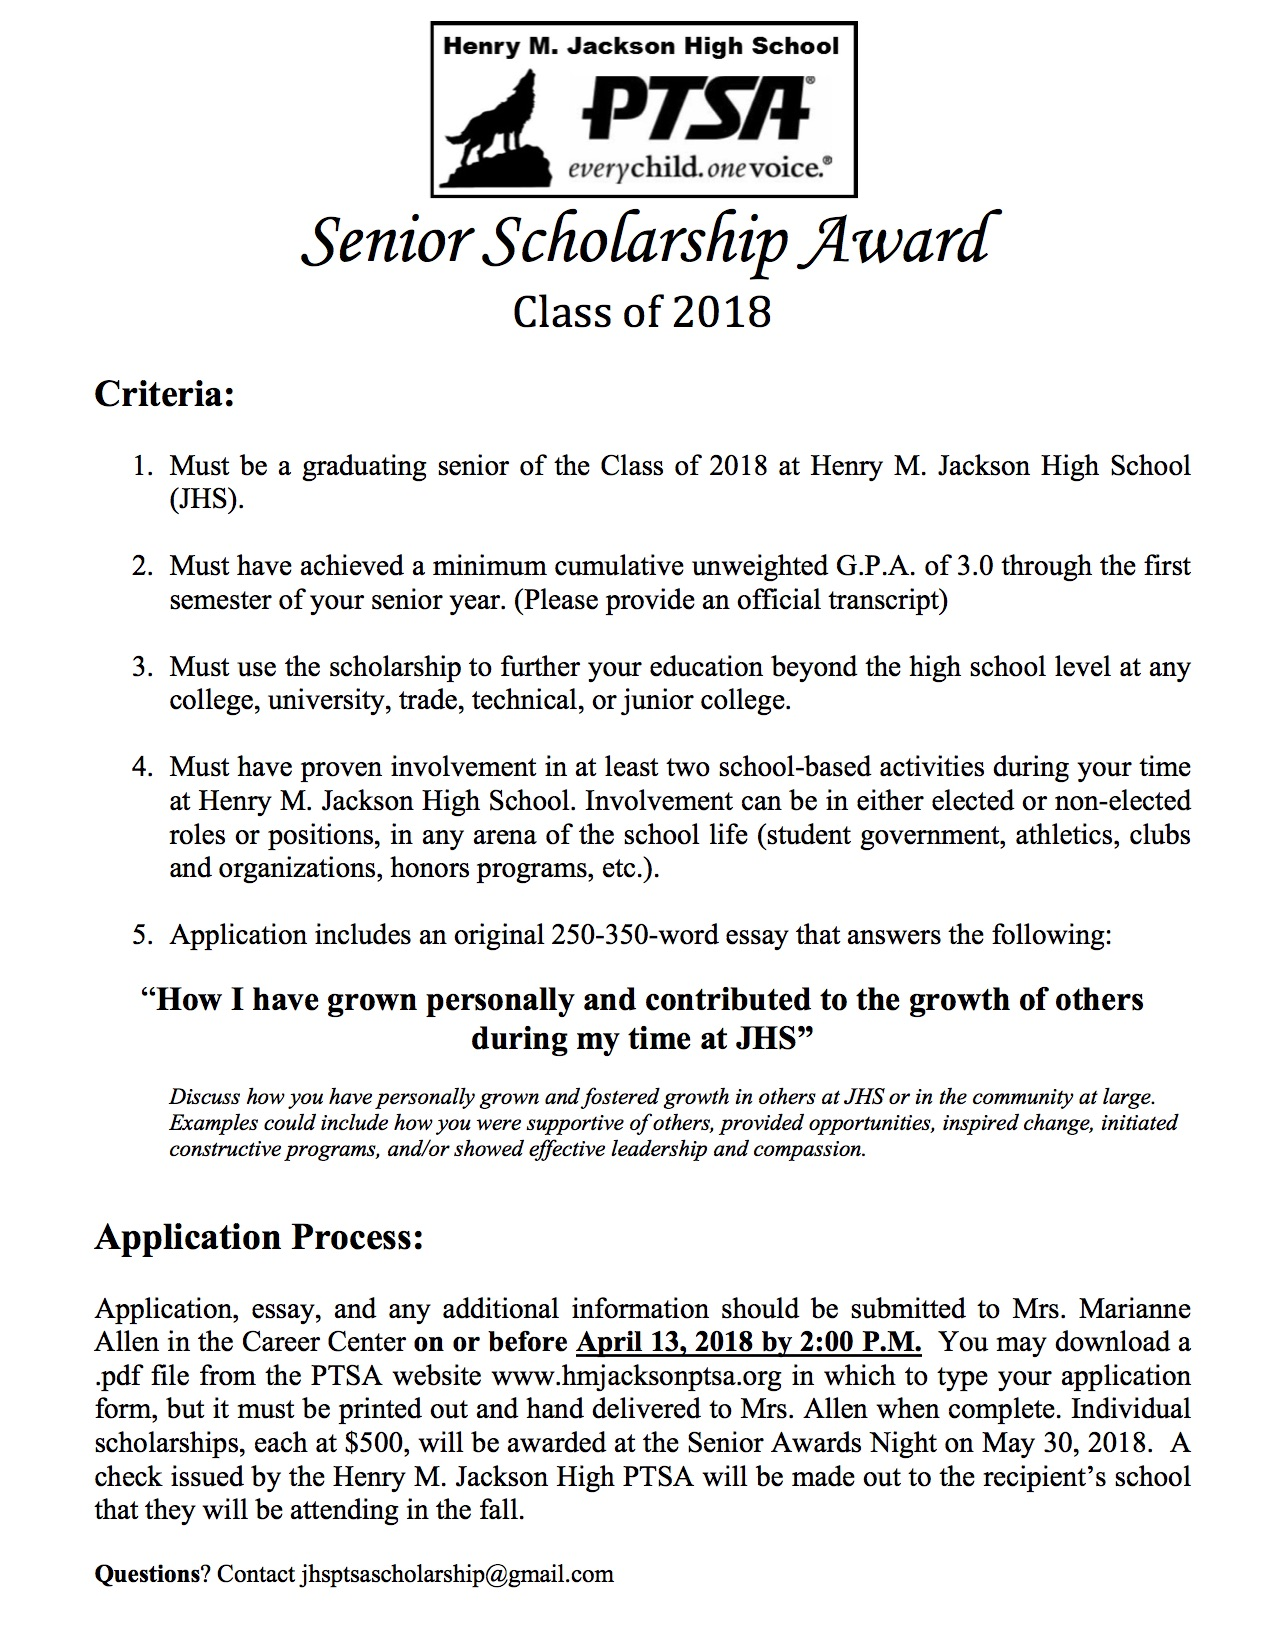 004 no essay scholarships for college students senior henry m